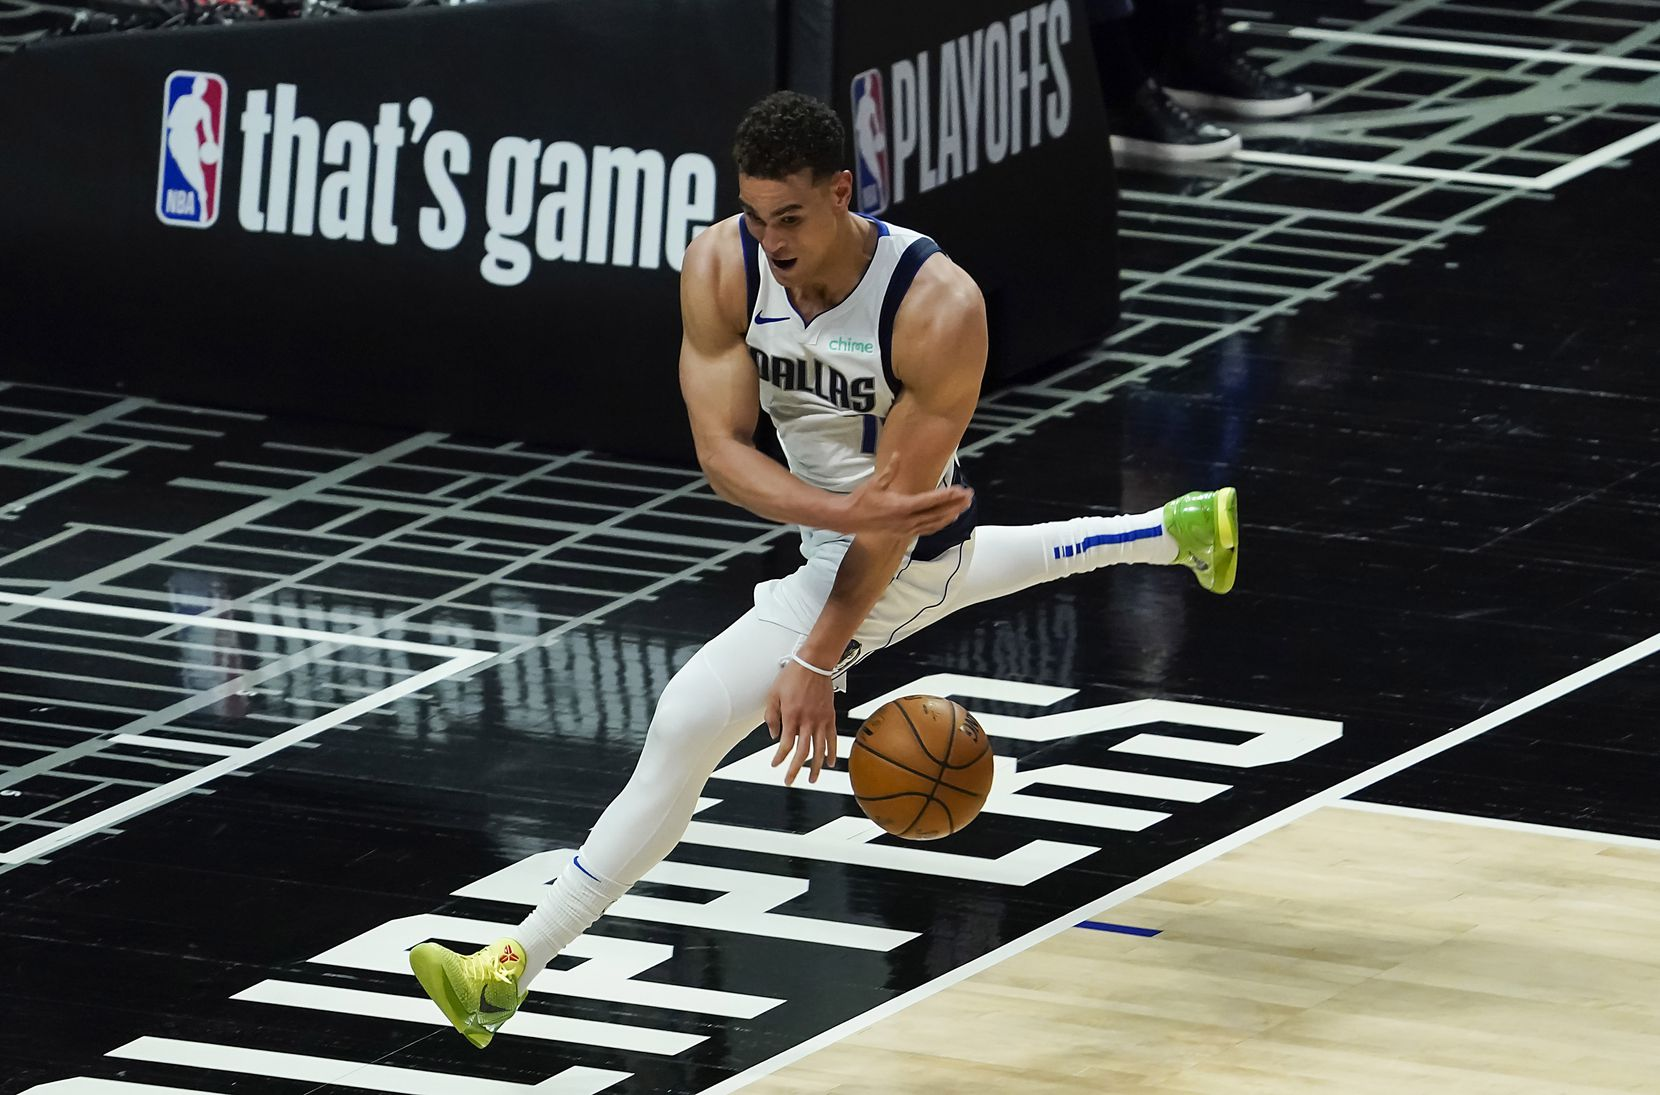 Dallas Mavericks center Dwight Powell tries to save a ball from going out of bounds during the fourth quarter of an NBA playoff basketball game against the LA Clippers at the Staples Center on Wednesday, June 2, 2021, in Los Angeles. The Mavericks won the game 105-100. (Smiley N. Pool/The Dallas Morning News)